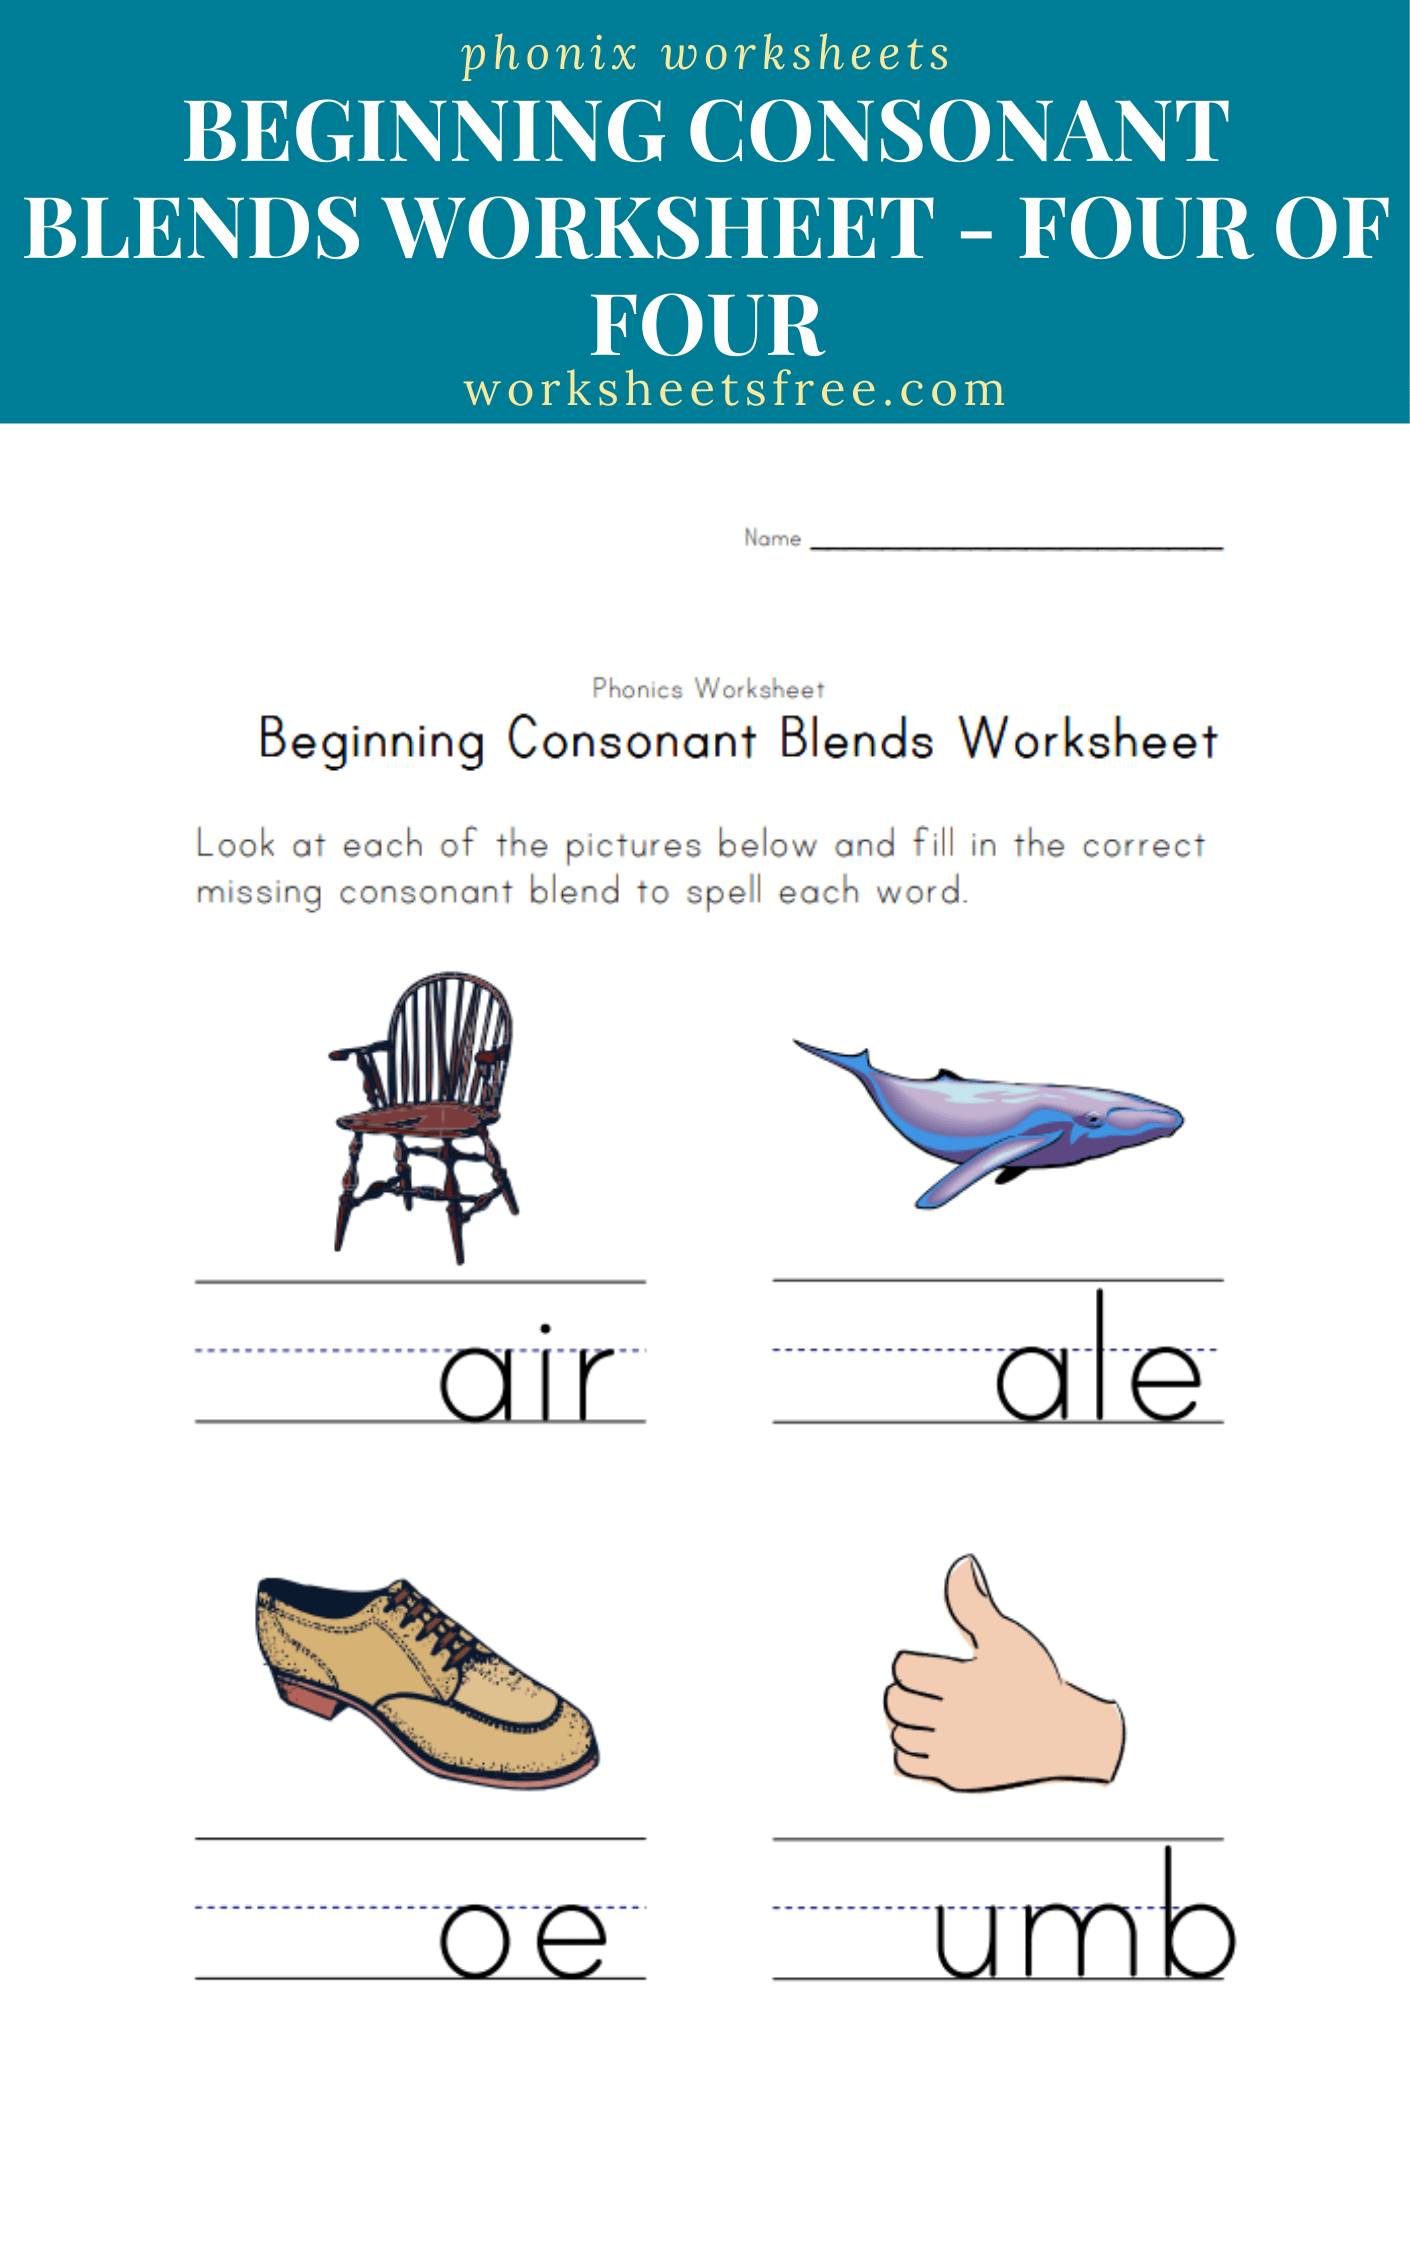 small resolution of Beginning-Consonant-Blends-Worksheet-Four-of-Four   Worksheets Free